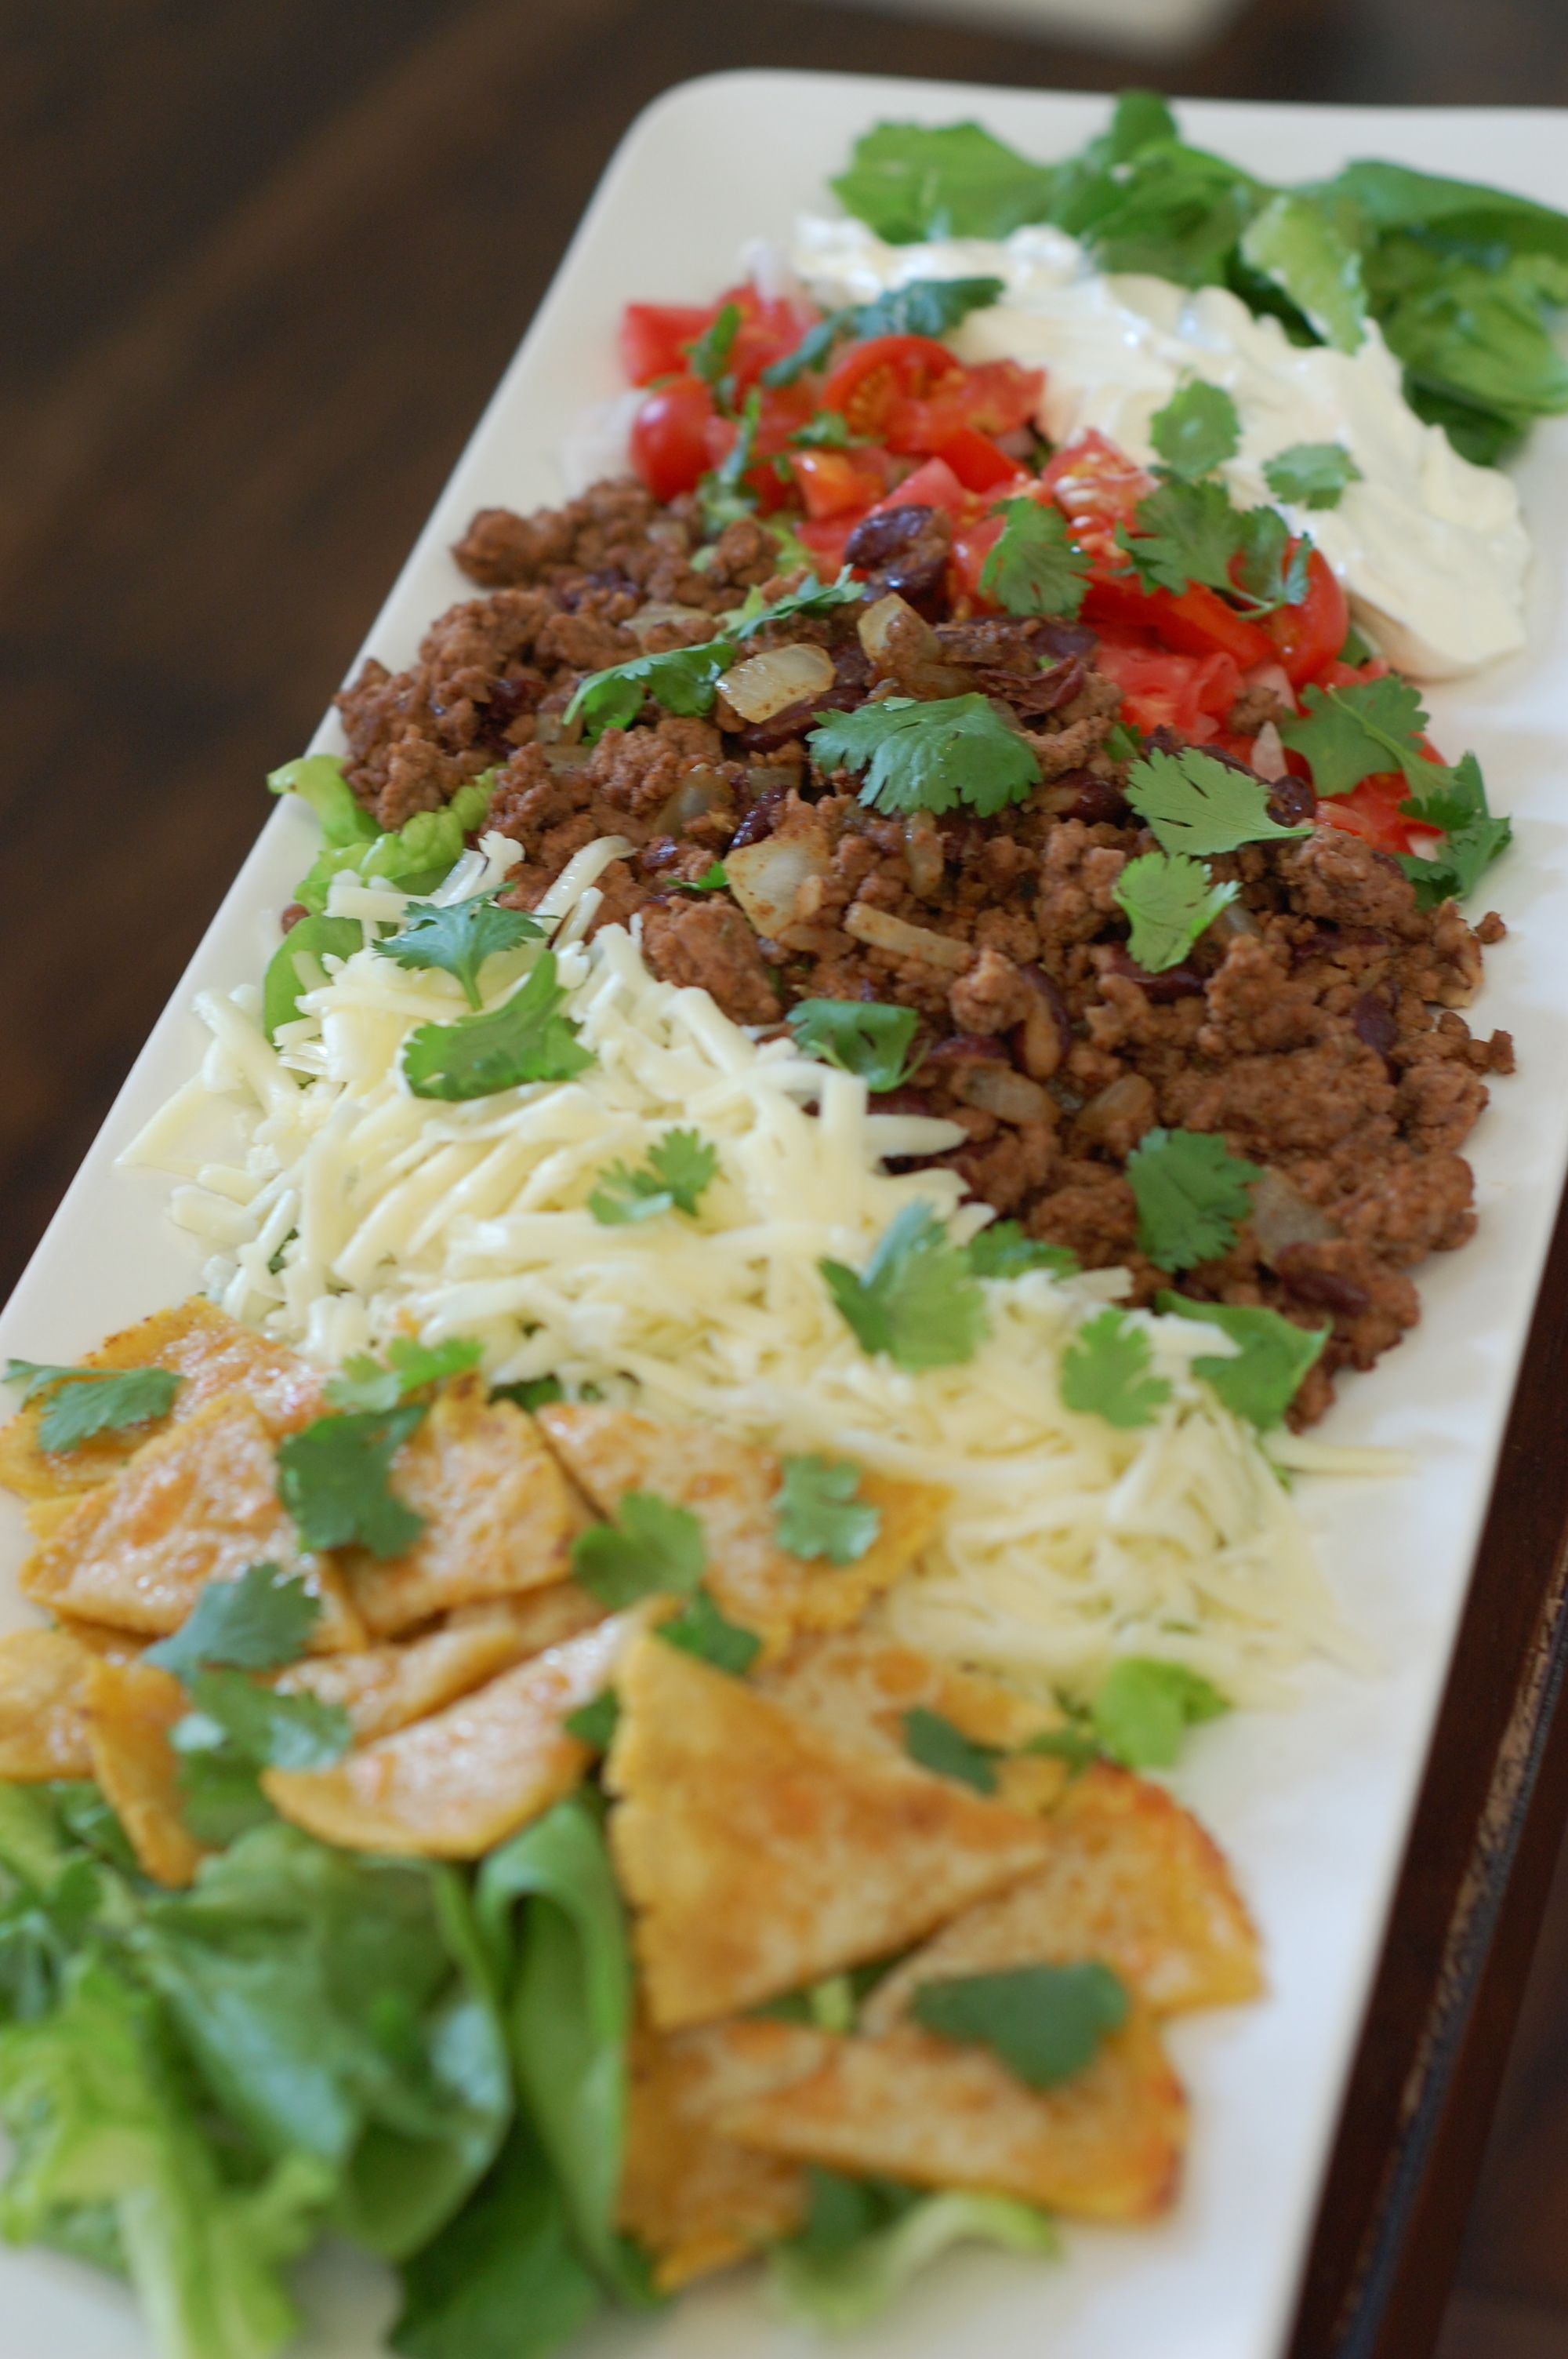 Taco salad recipe taco salads salads and foods 100 days of no processed food recipes forumfinder Gallery